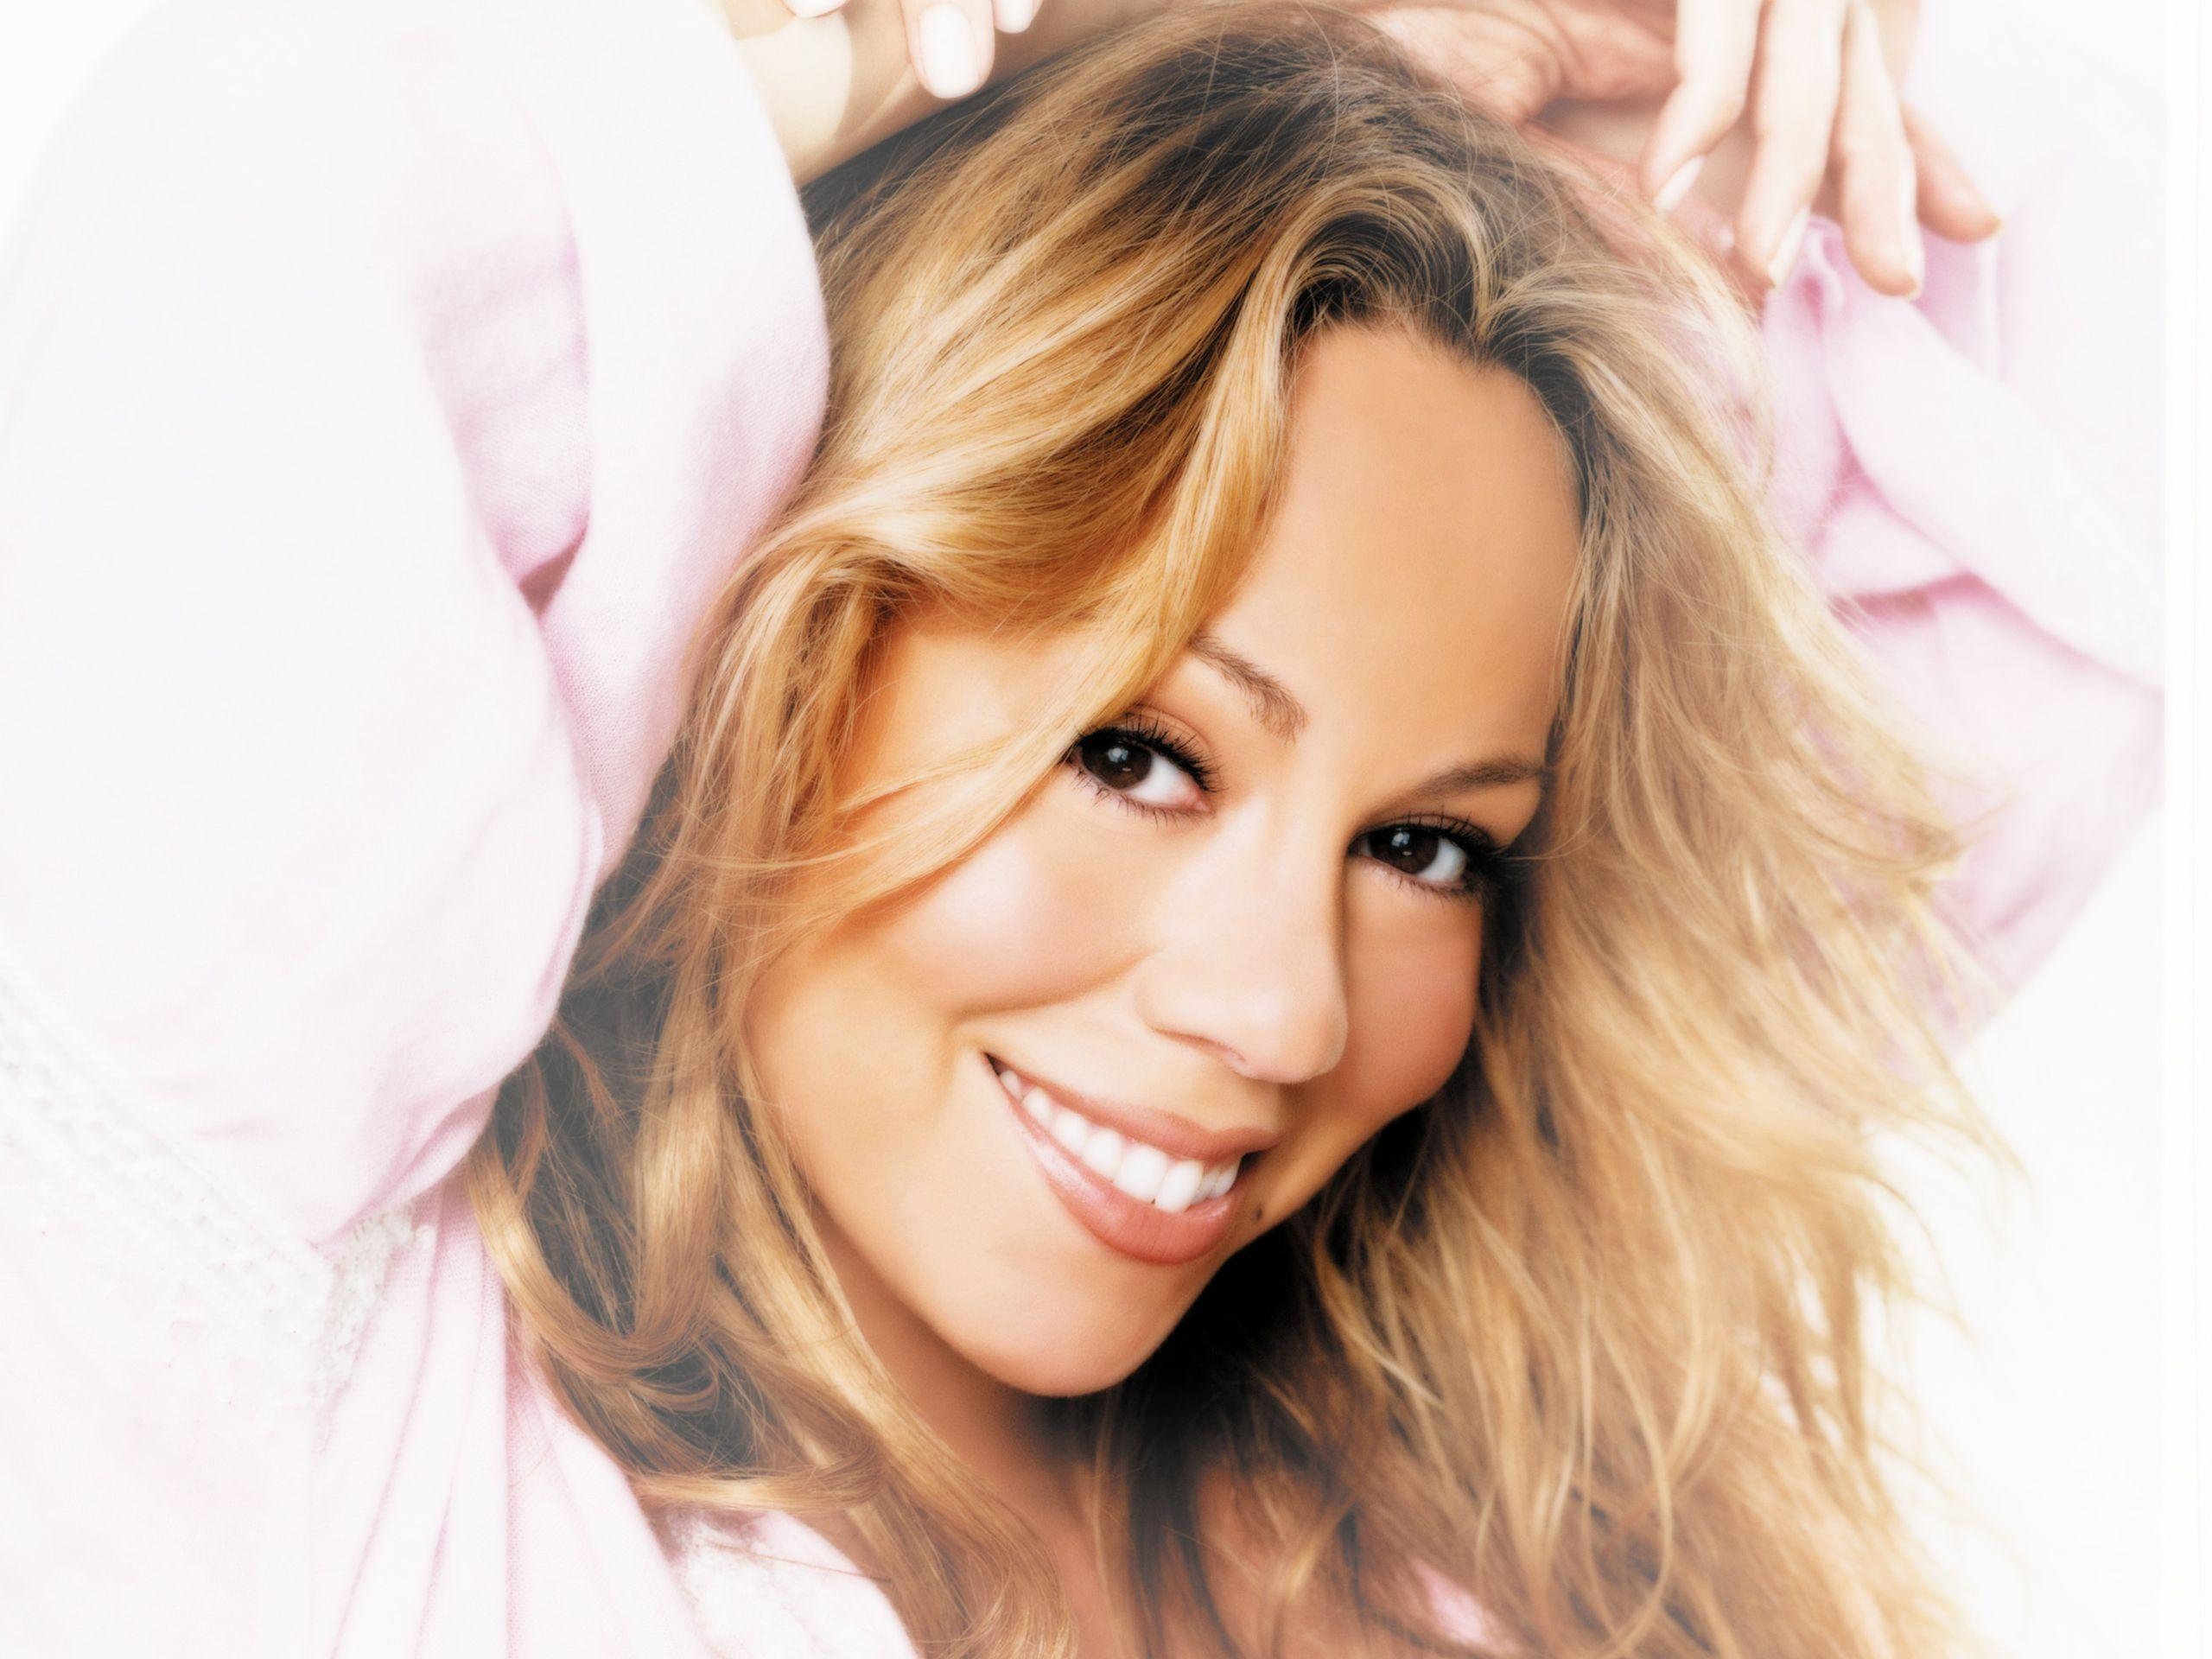 Mariah Carey wallpapers high quality and definition